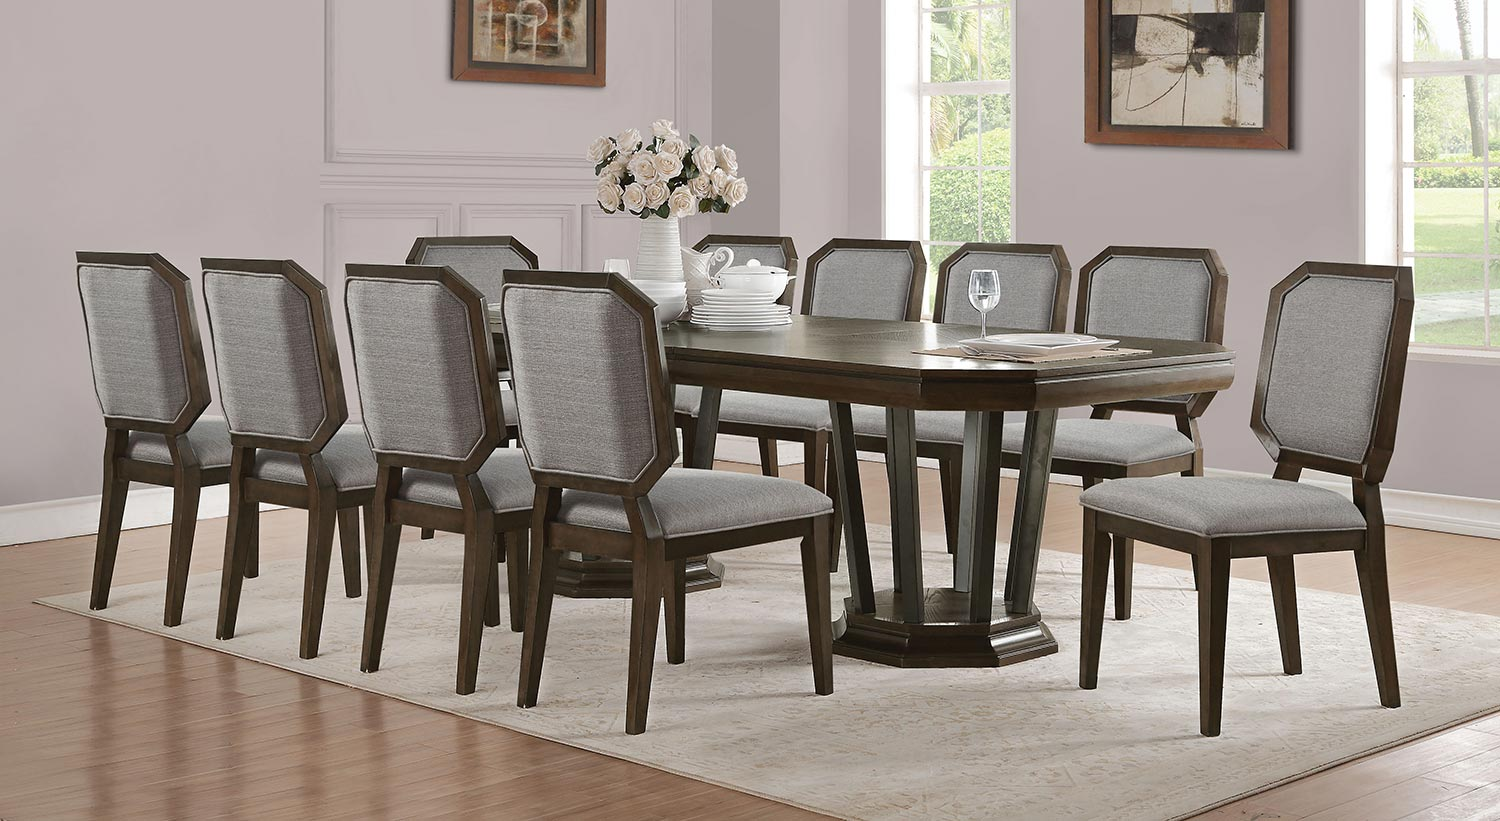 Acme Selma Dining Set with Double Pedestal - Tobacco